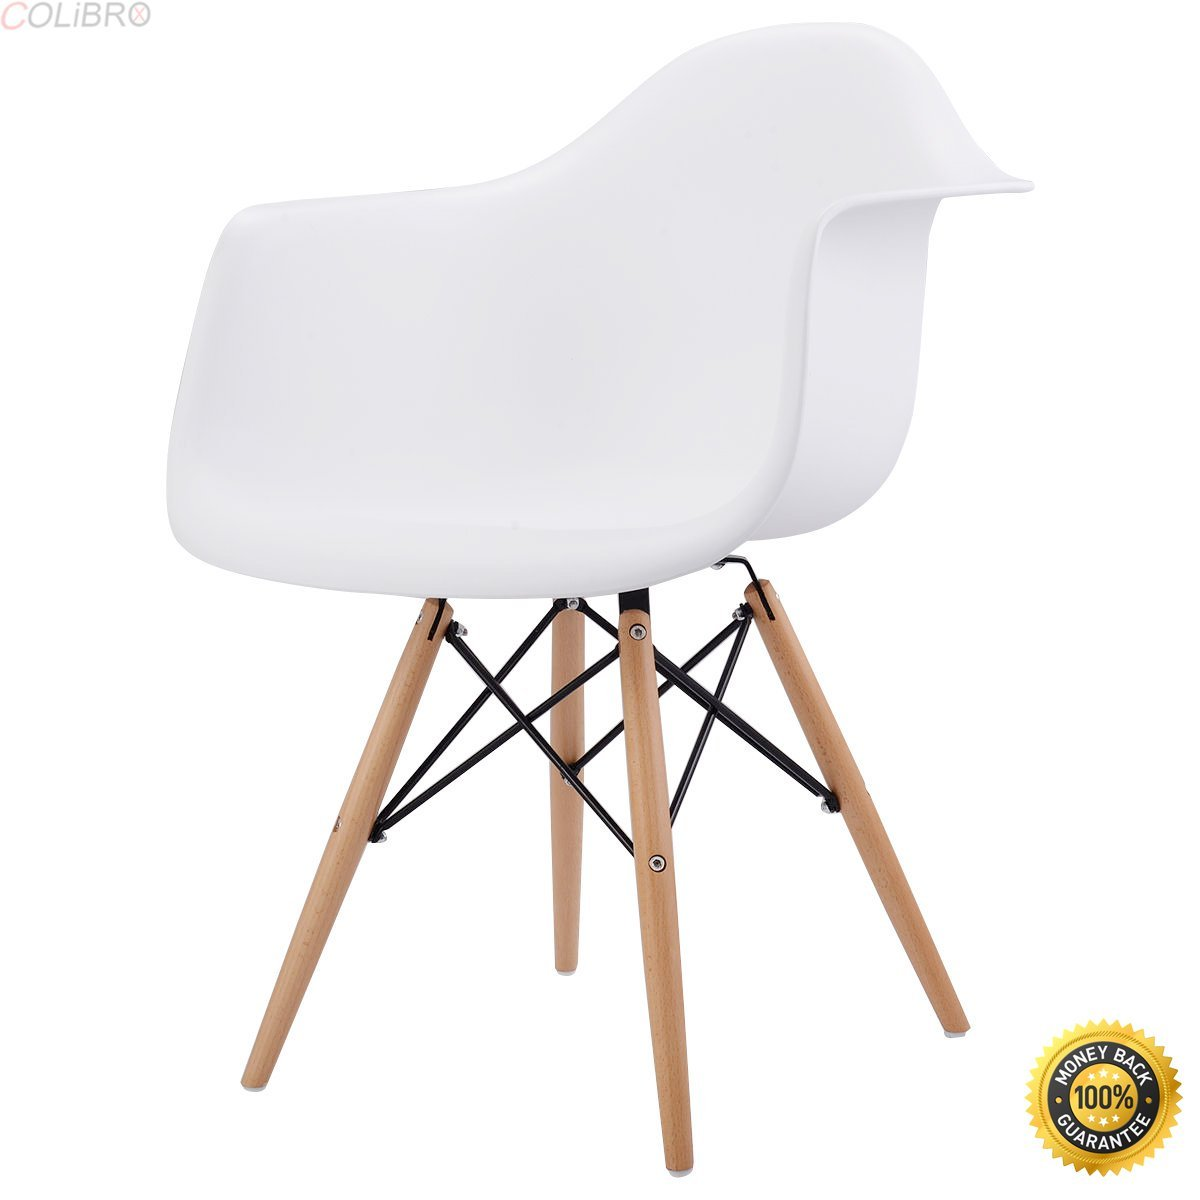 COLIBROX--Set of 2 Mid Century Modern Molded Dining Arm Side Chair Wood Legs White New,armchair cheap,Soft Modern Arm Chair,cheap living room chairs,living room chair,chairs for sale cheap